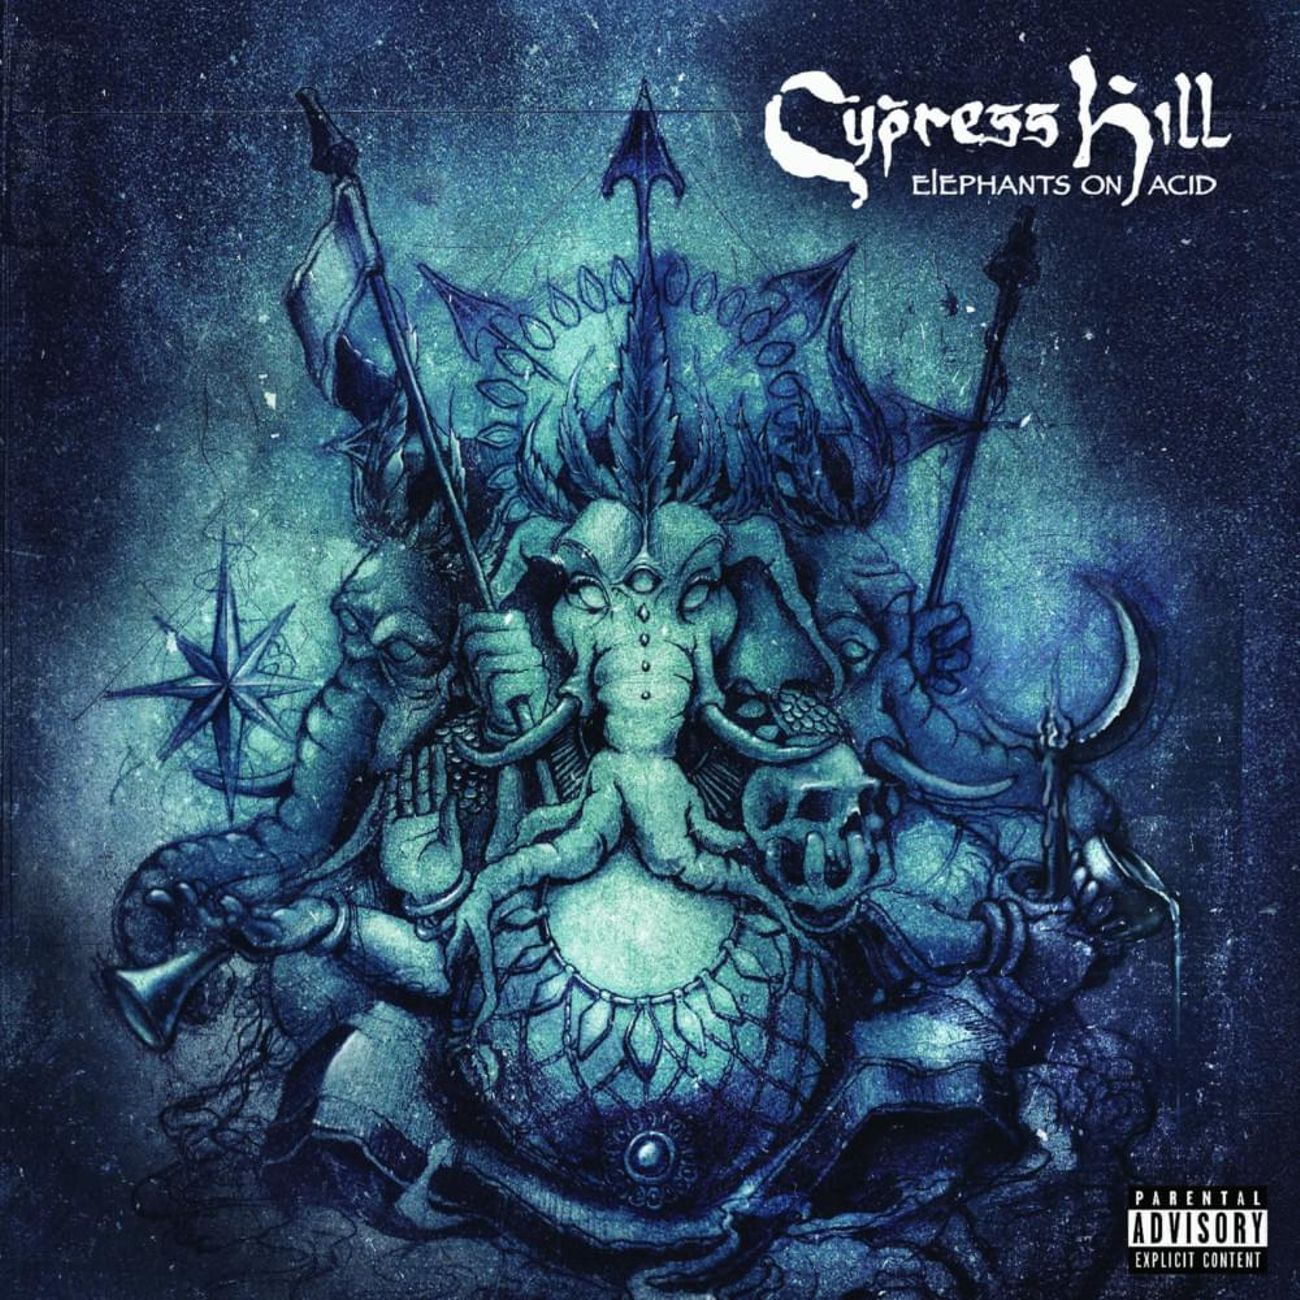 cypress hill elephants on acid album Cypress Hill announce new album, Elephants on Acid, share Band of Gypsies: Stream